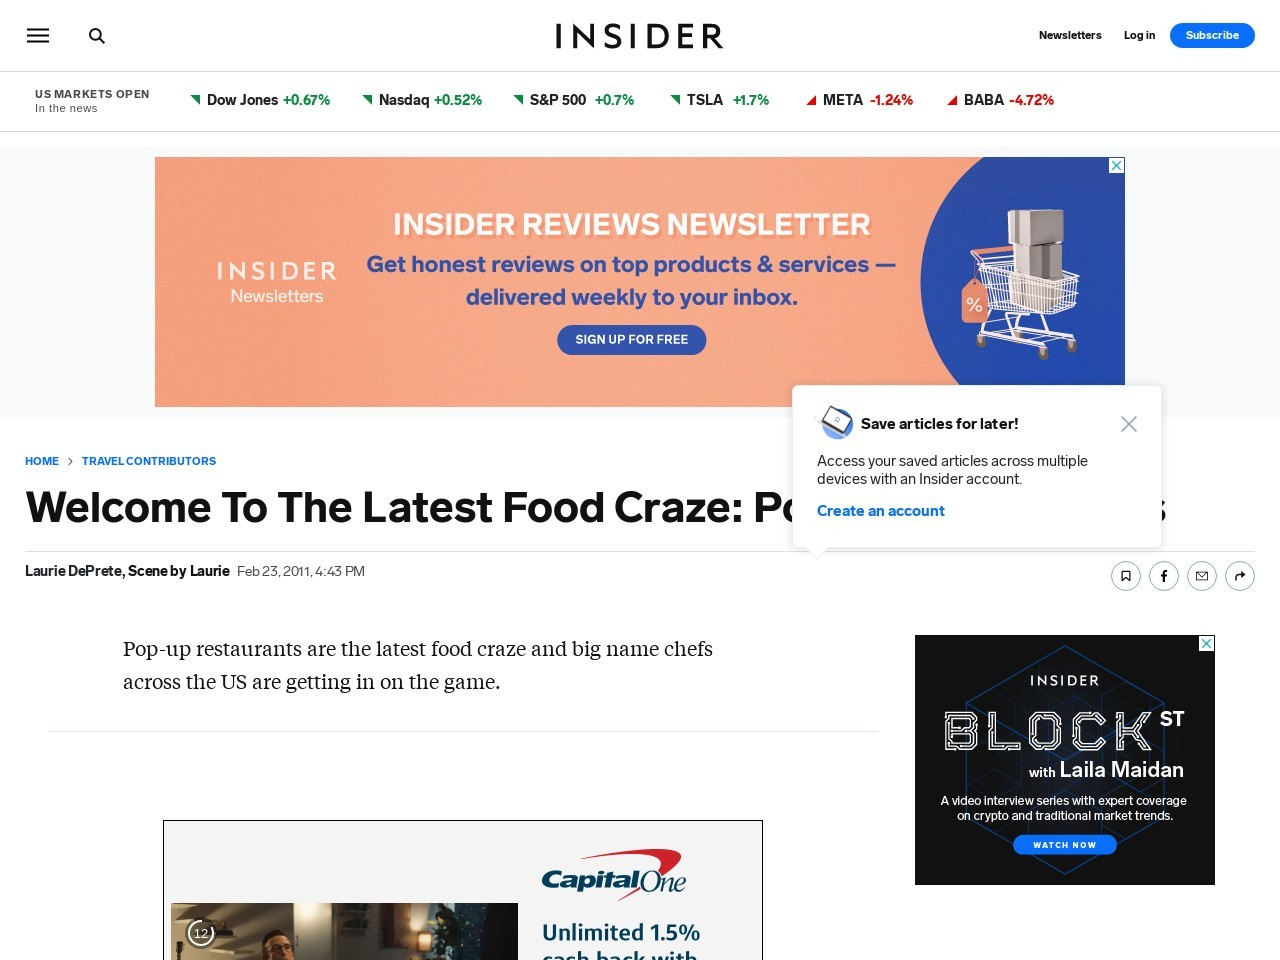 Welcome To The Latest Food Craze: Pop-Up Restaurants …